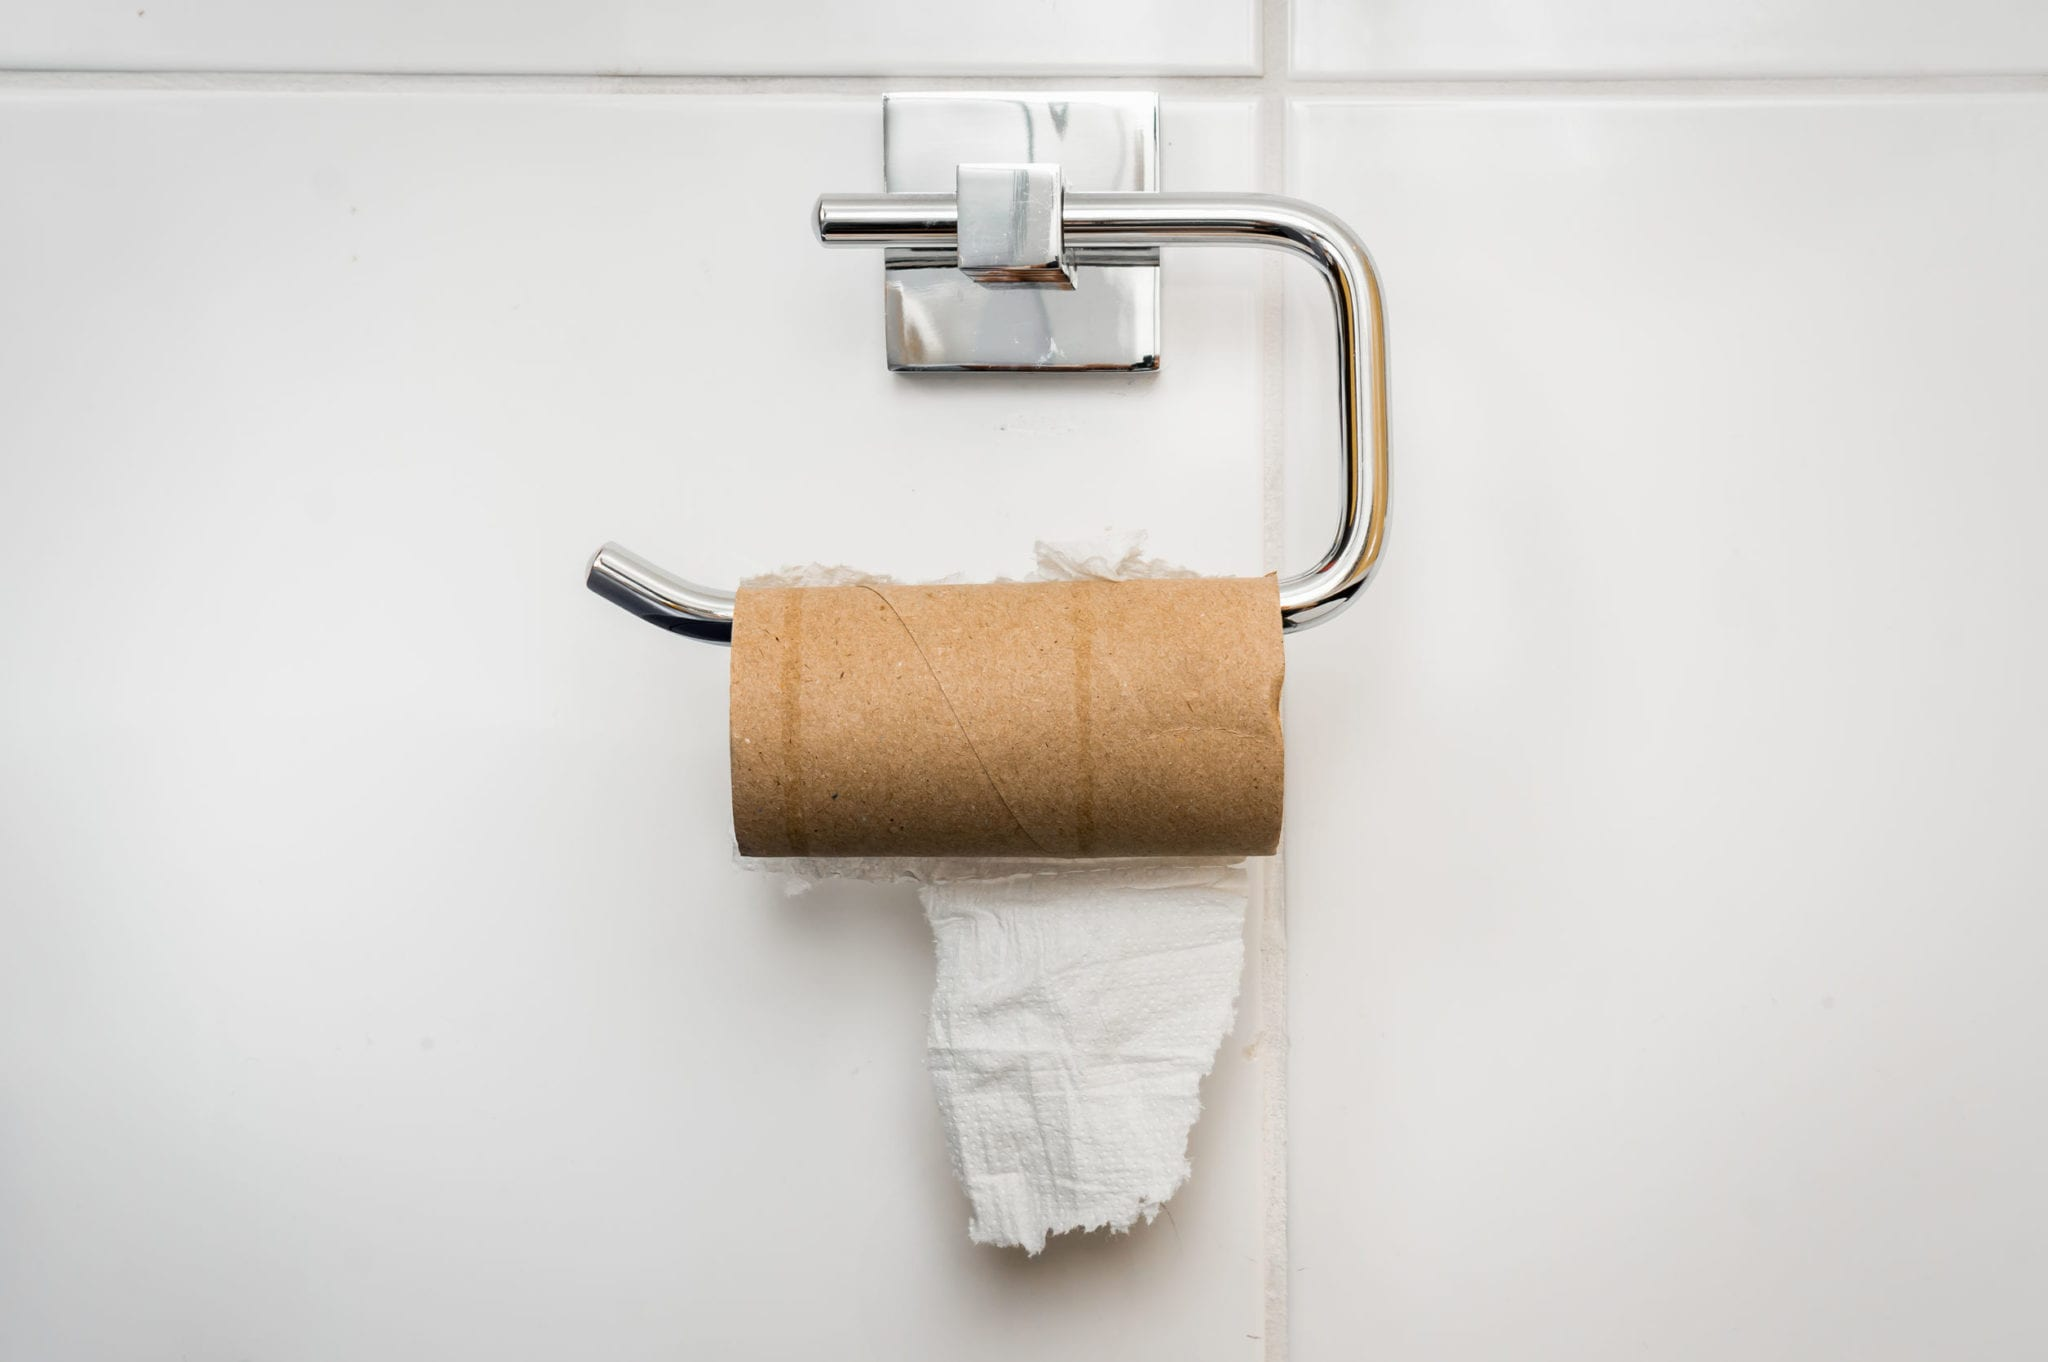 Texans, Don't Try to Steal Toilet Paper from Restaurants